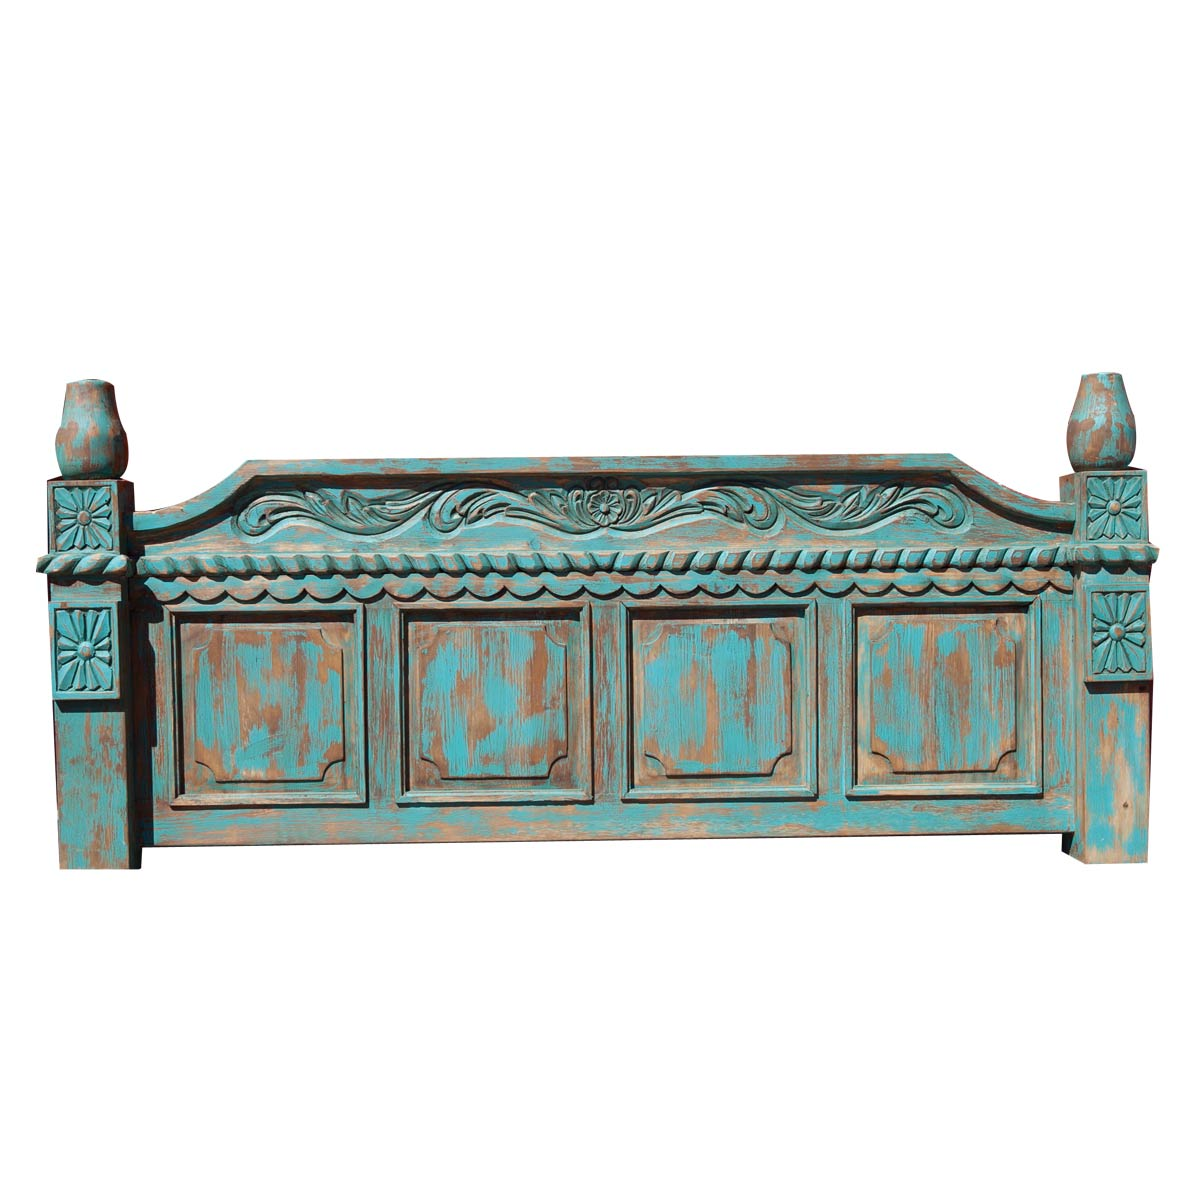 Buy Carved Turquoise Bed Online